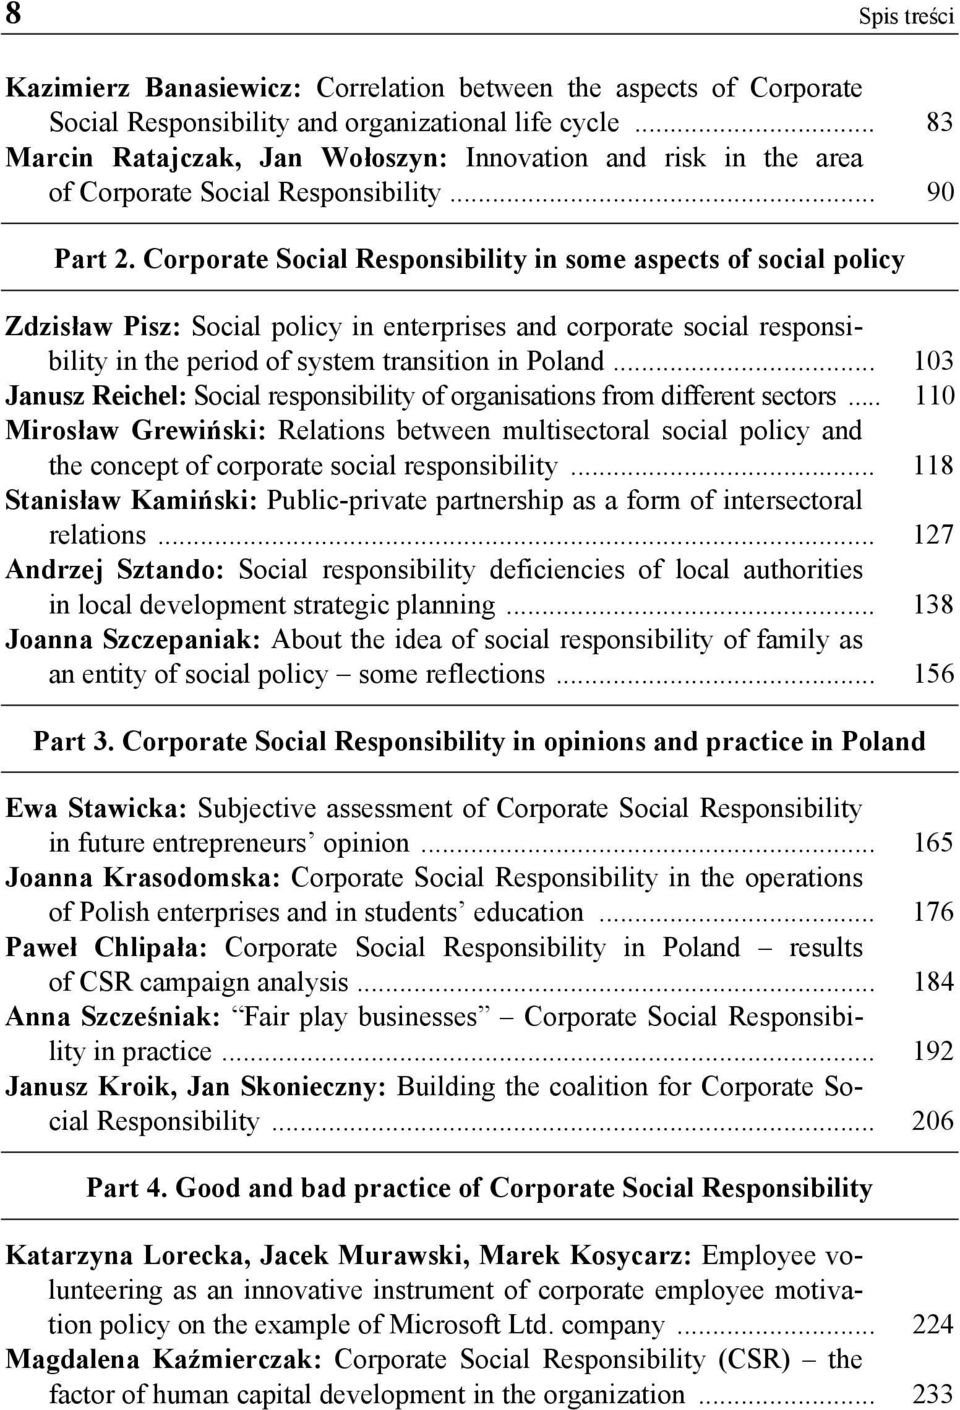 Corporate Social Responsibility in some aspects of social policy Zdzisław Pisz: Social policy in enterprises and corporate social responsibility in the period of system transition in Poland.